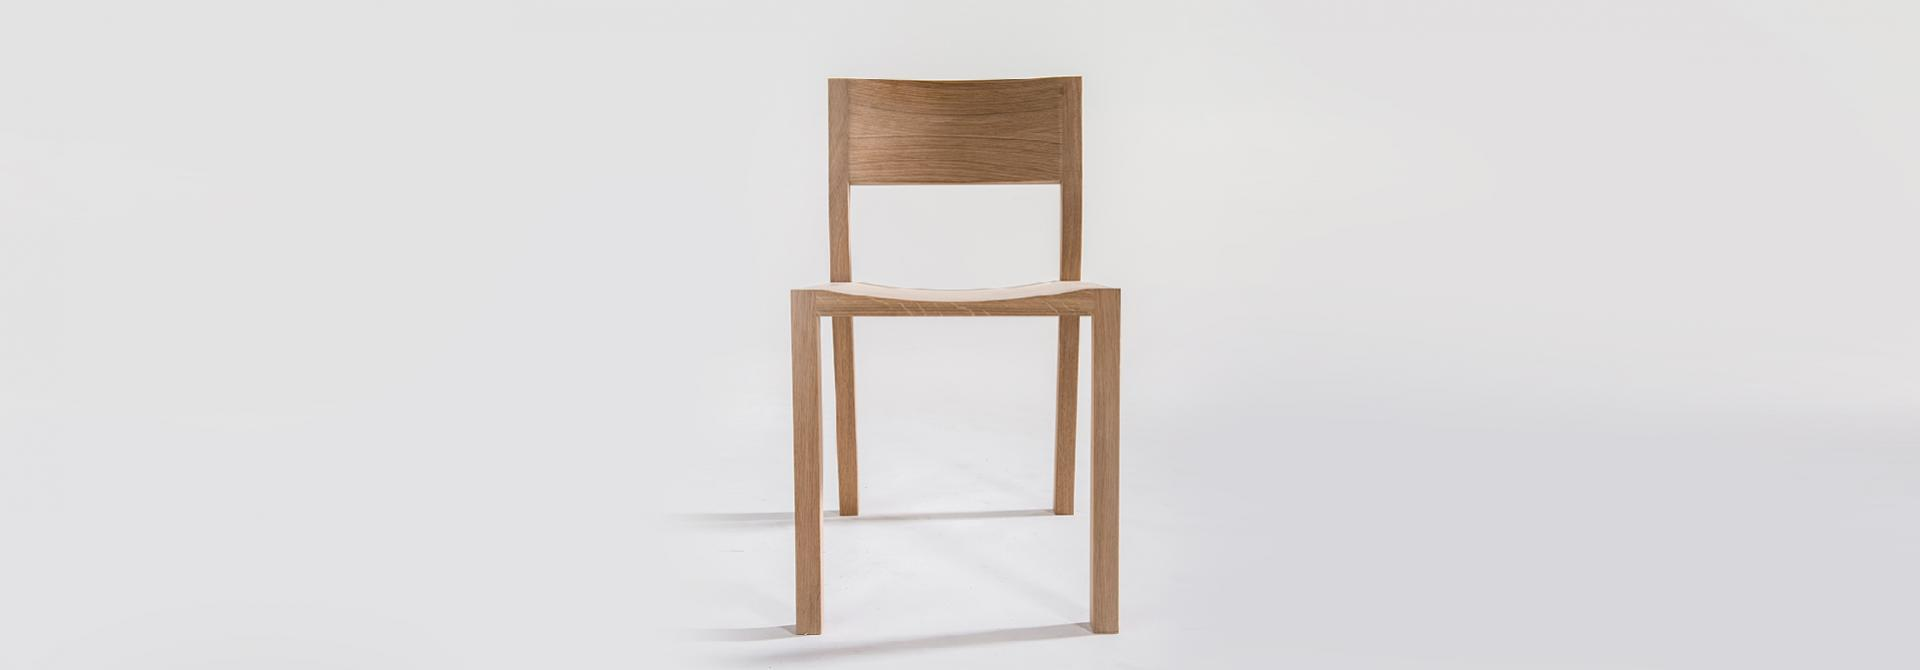 Chair hack wood front view